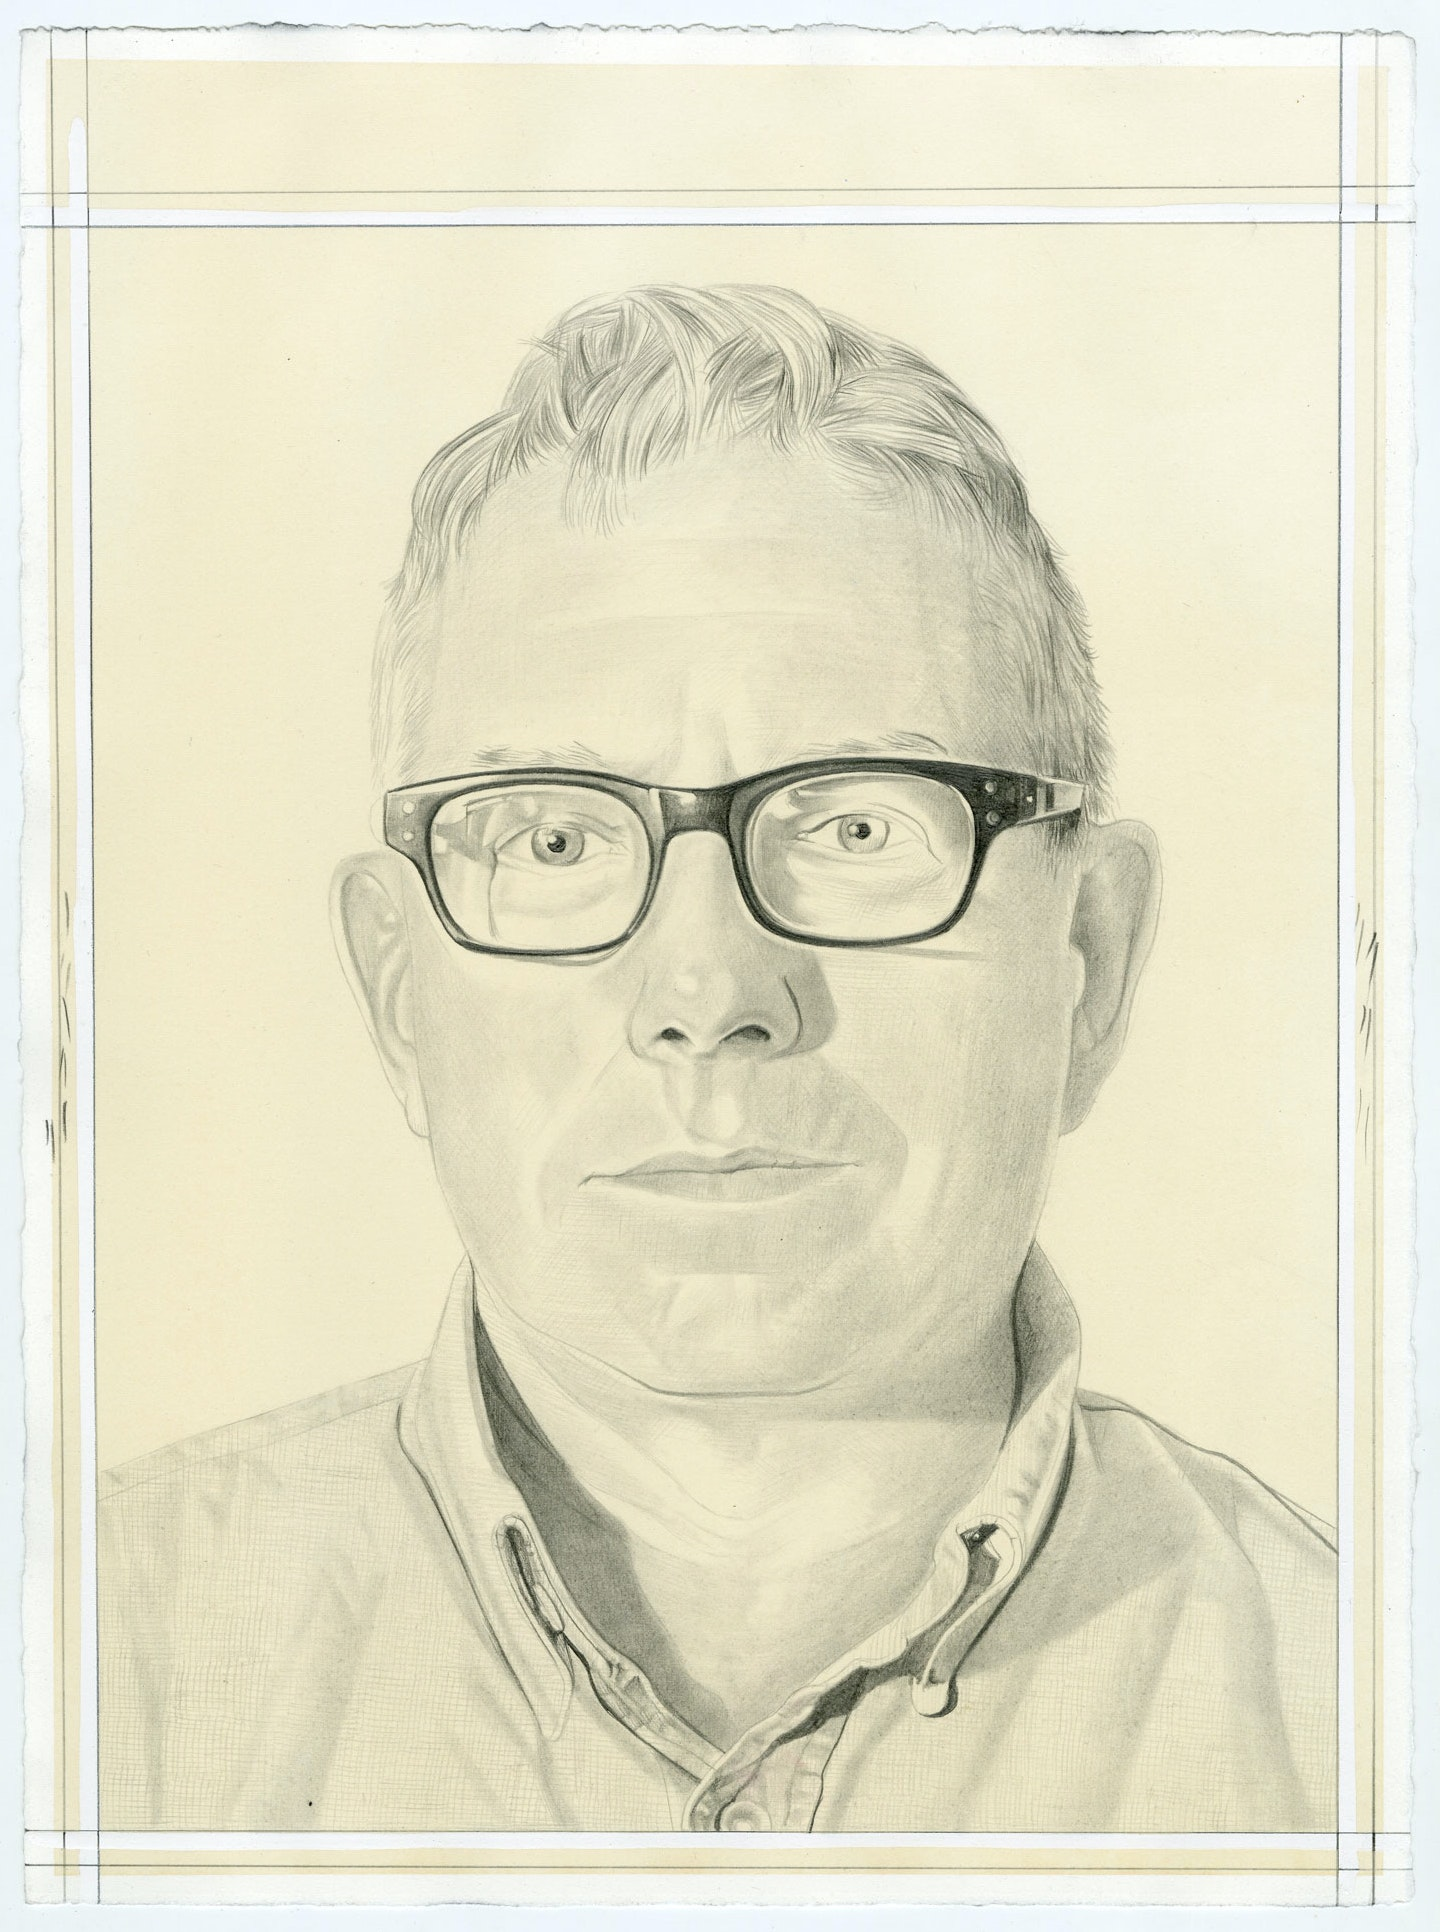 Portrait of Mark Dion, pencil on paper by Phong Bui.